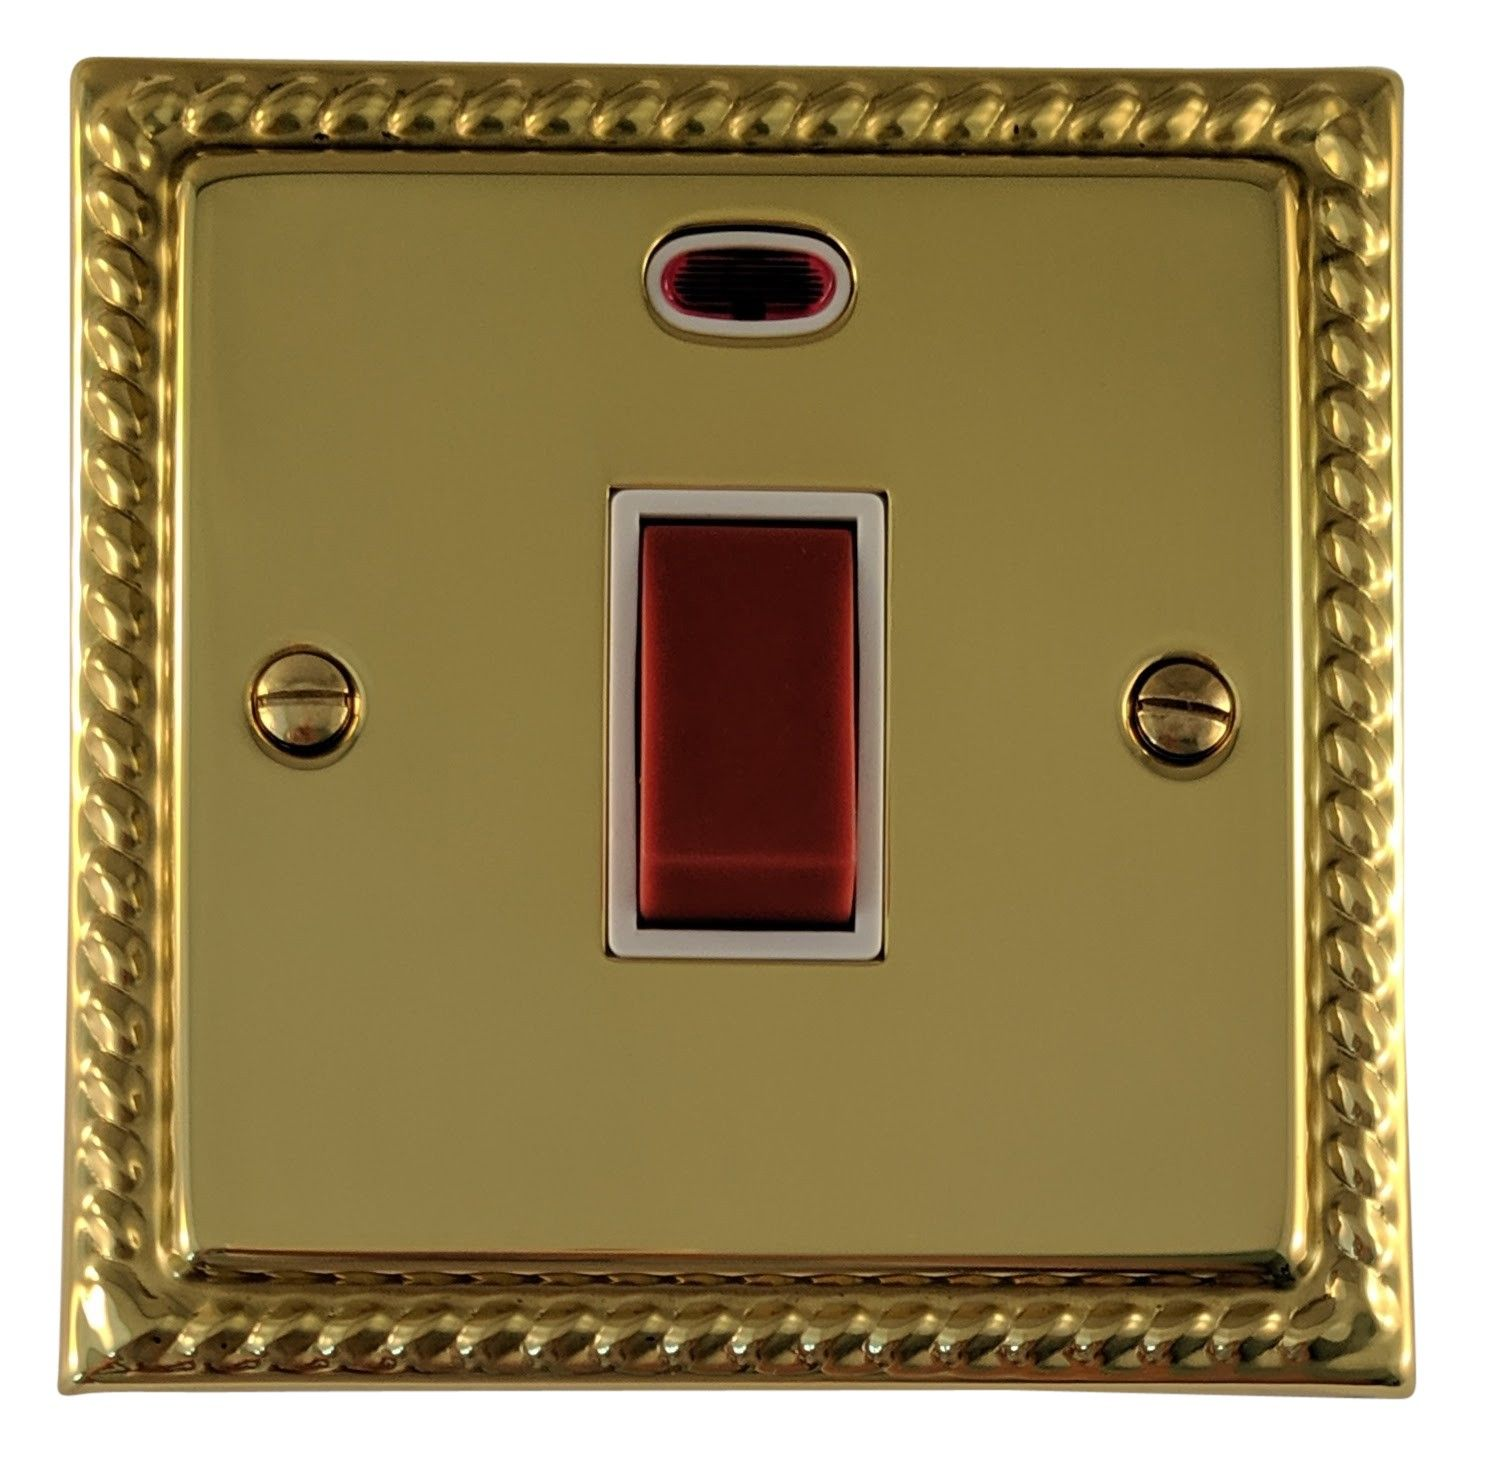 G&H MB46W Monarch Roped Polished Brass 45 Amp DP Cooker Switch & Neon Single Plate